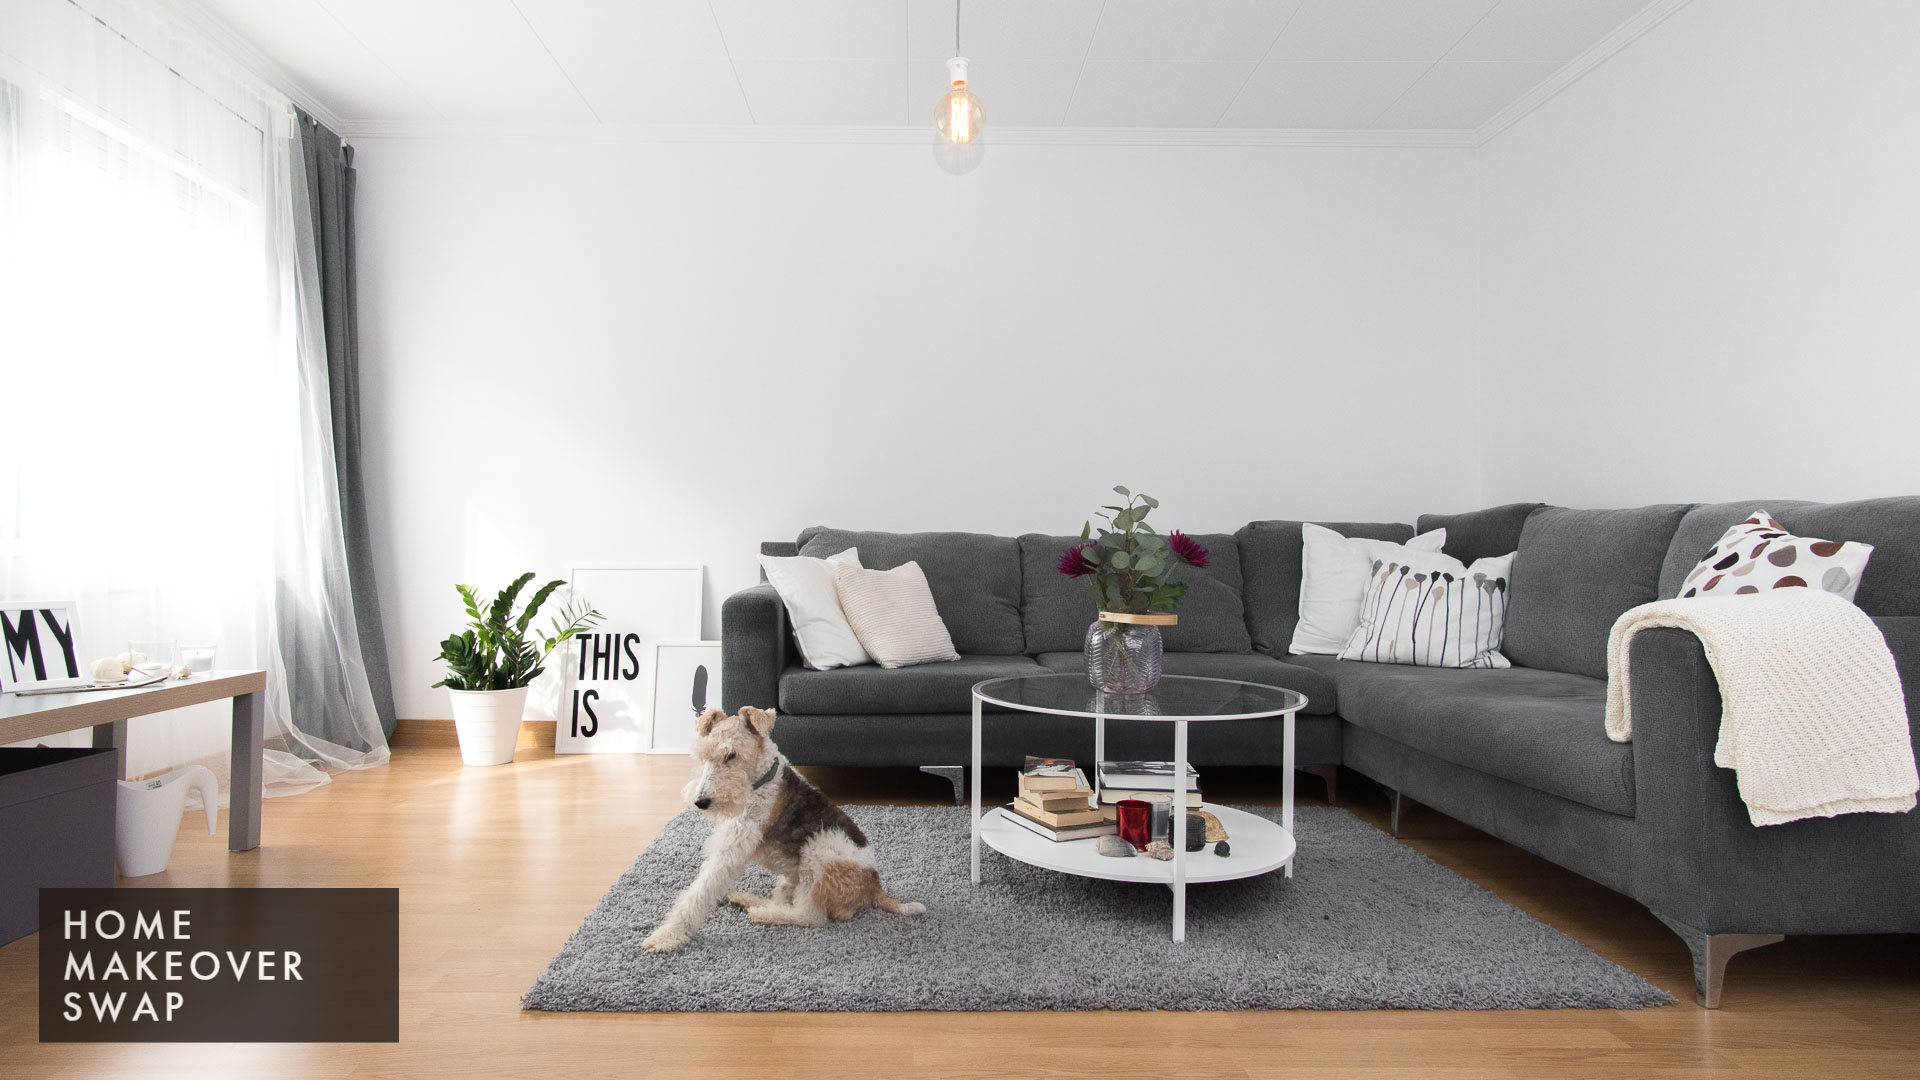 BUDGET550 EUR - MAKEOVER & PHOTOGRAPHY